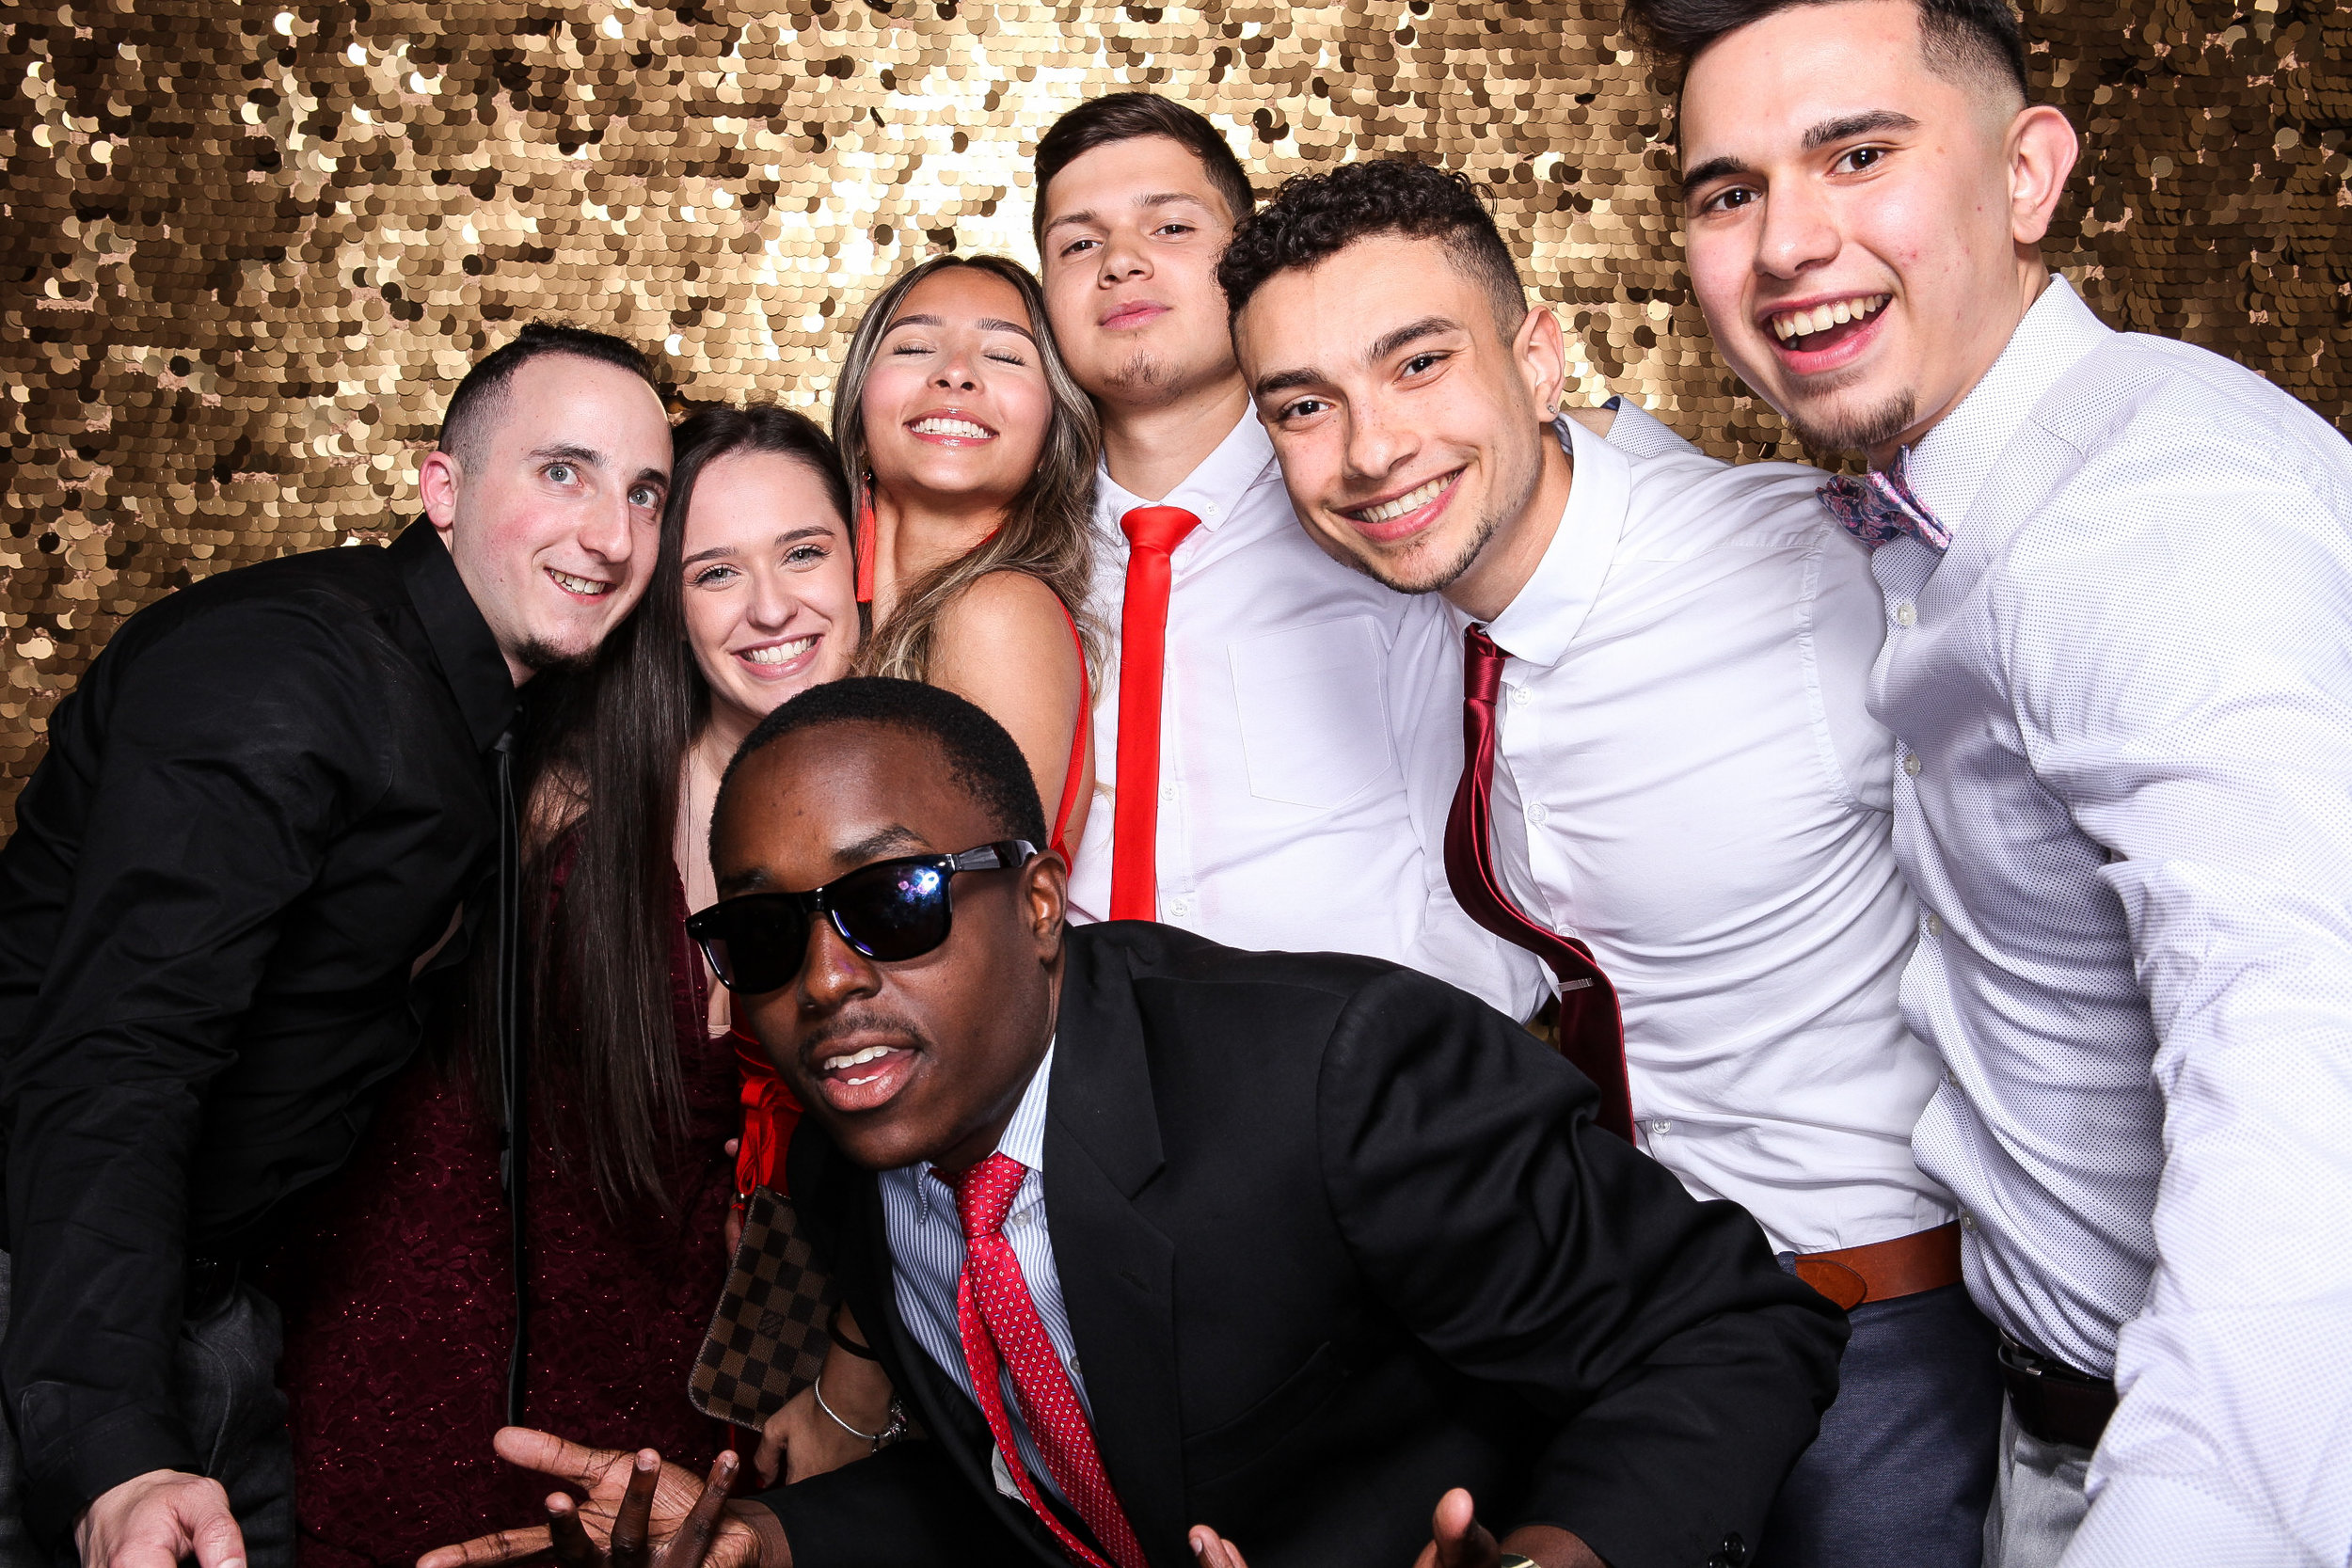 20190503_Adelphi_Senior_Formal-108.jpg